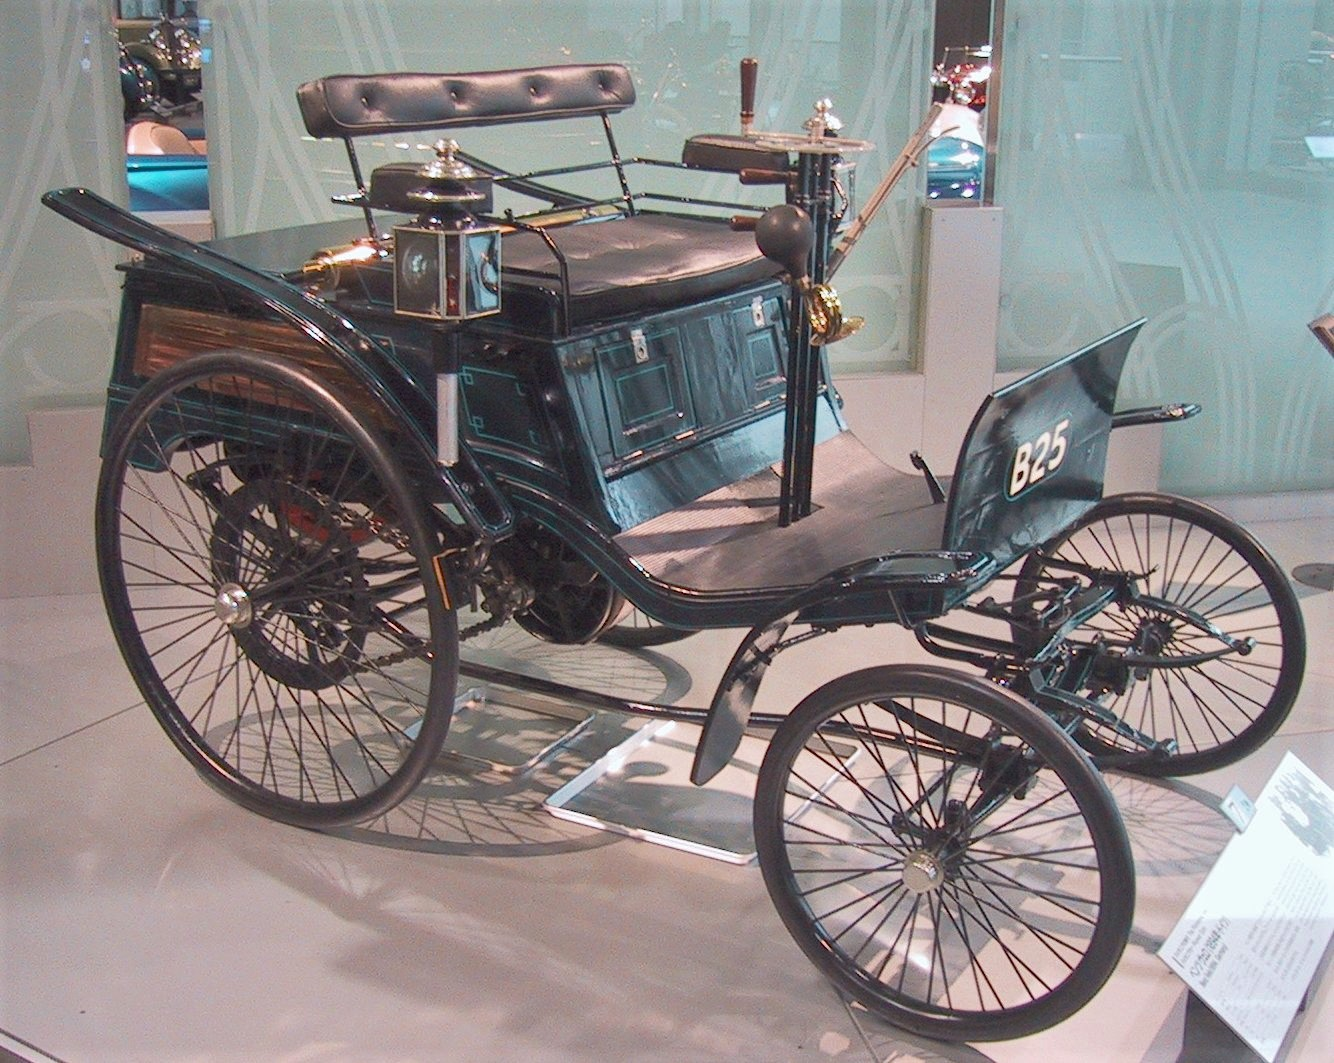 Karl Benz introduced the Velo in 1894, becoming the first production automobile